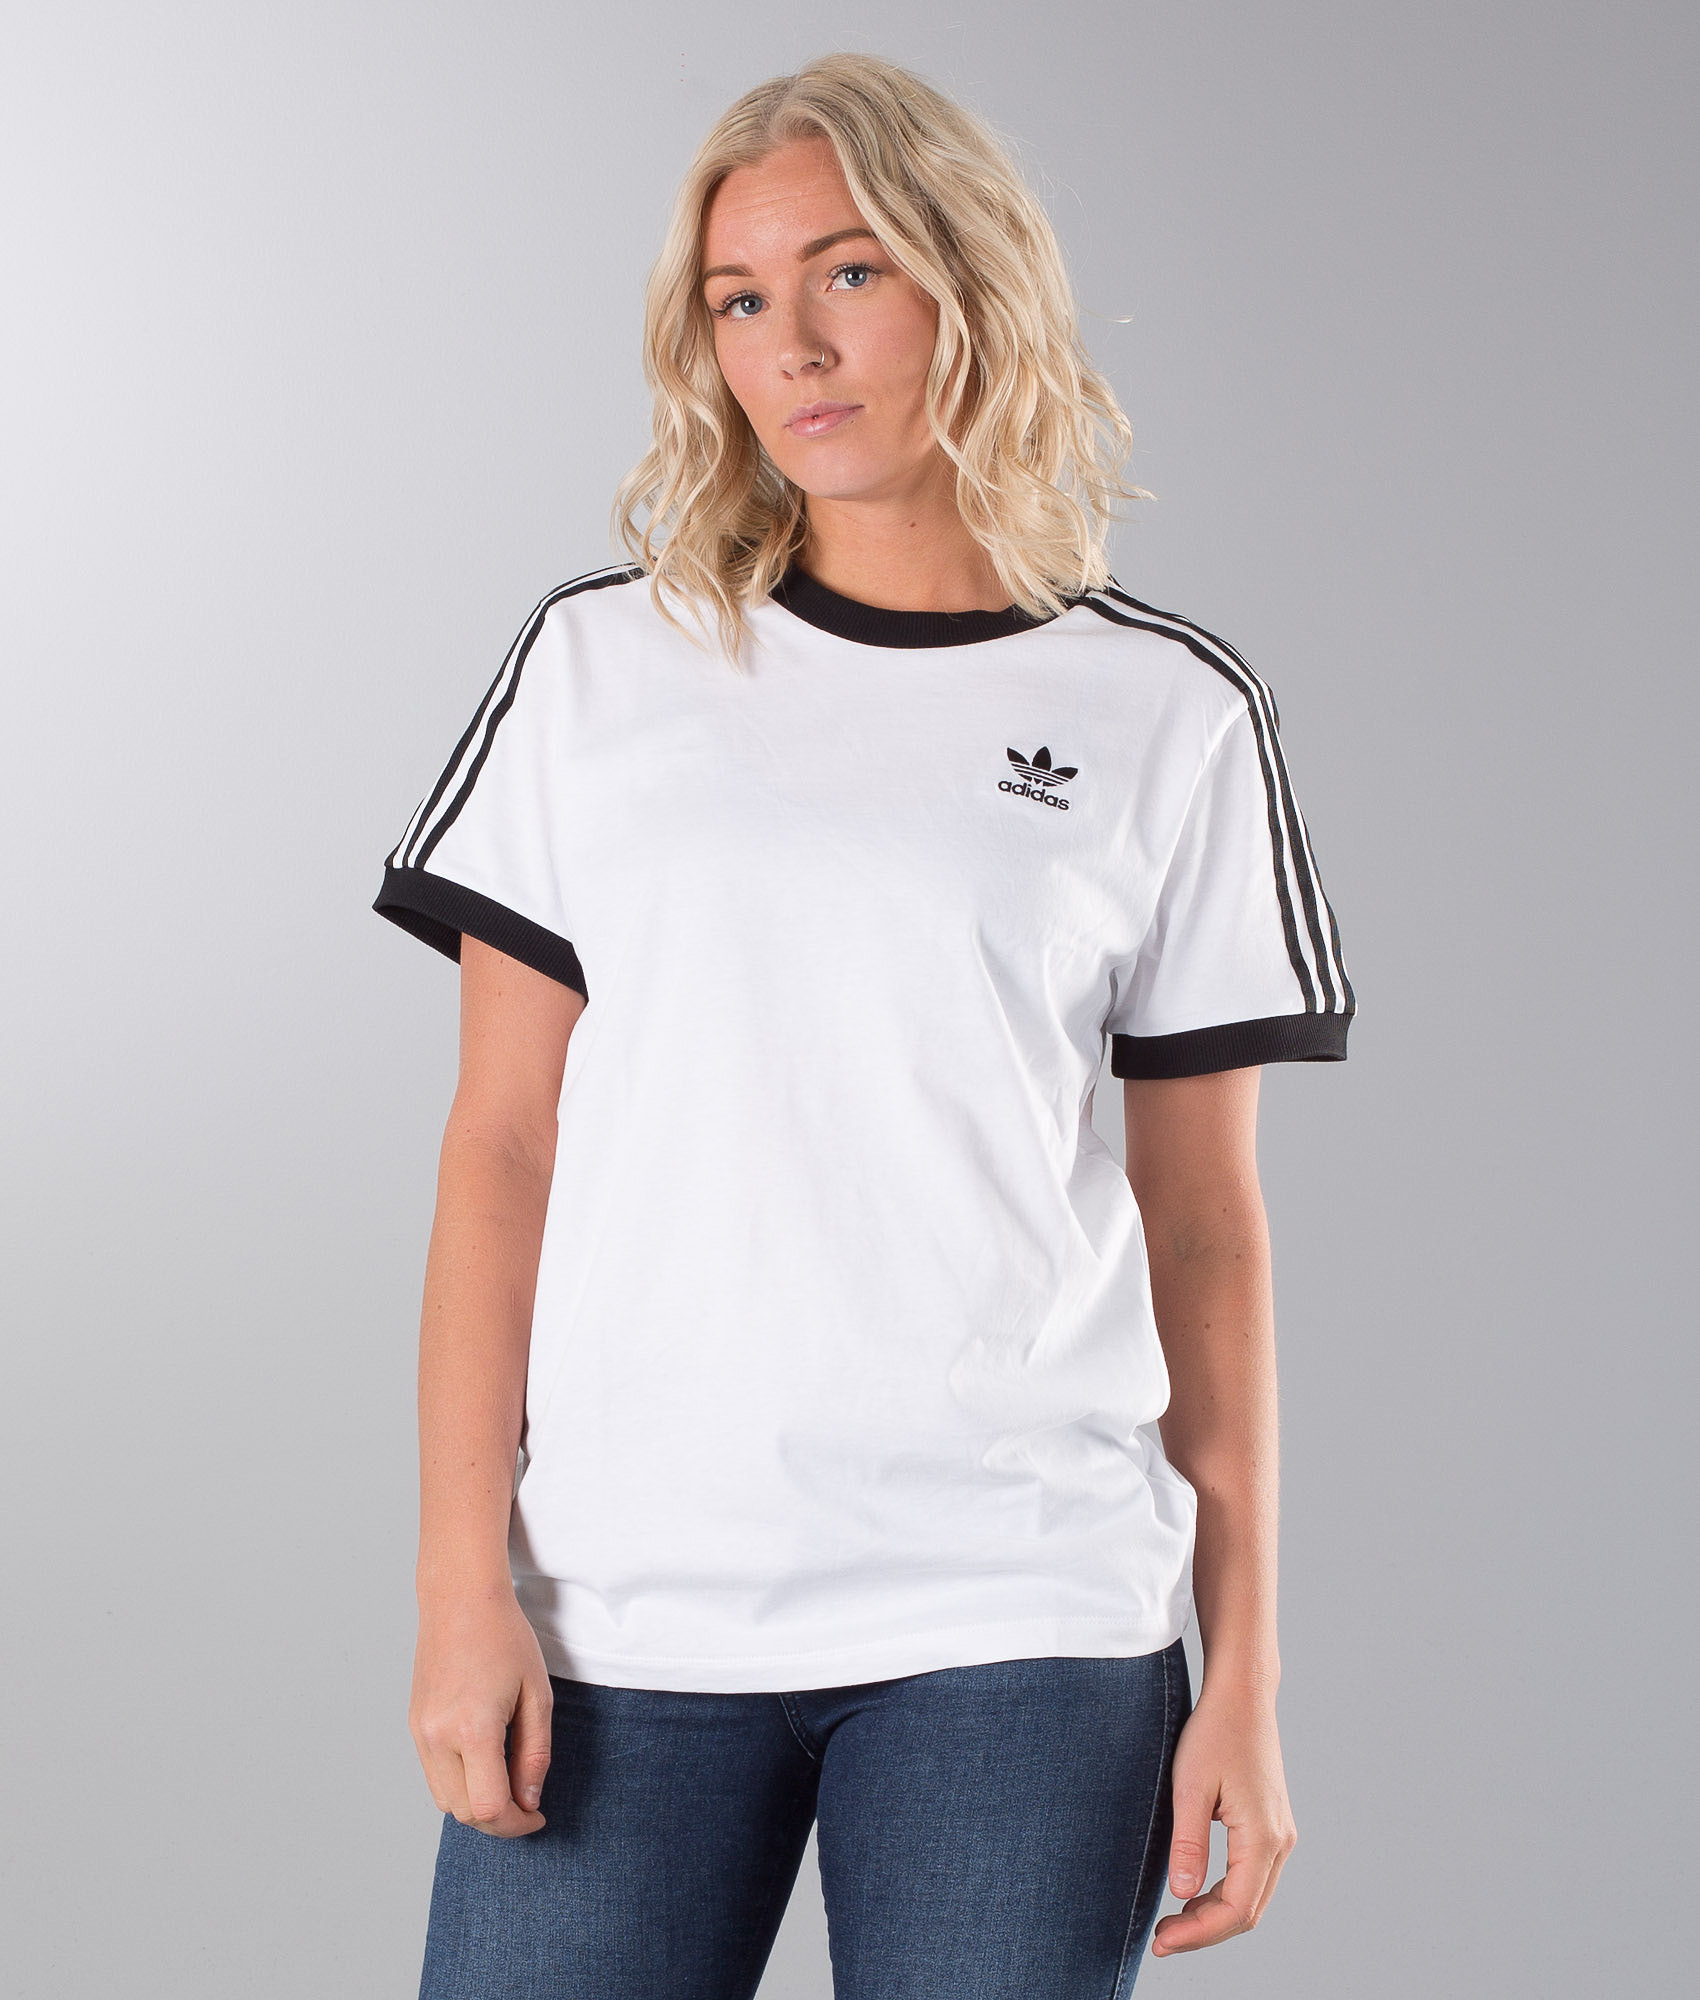 8177076dd654 Adidas Originals 3 Stripes T-shirt White/Black - Ridestore.com